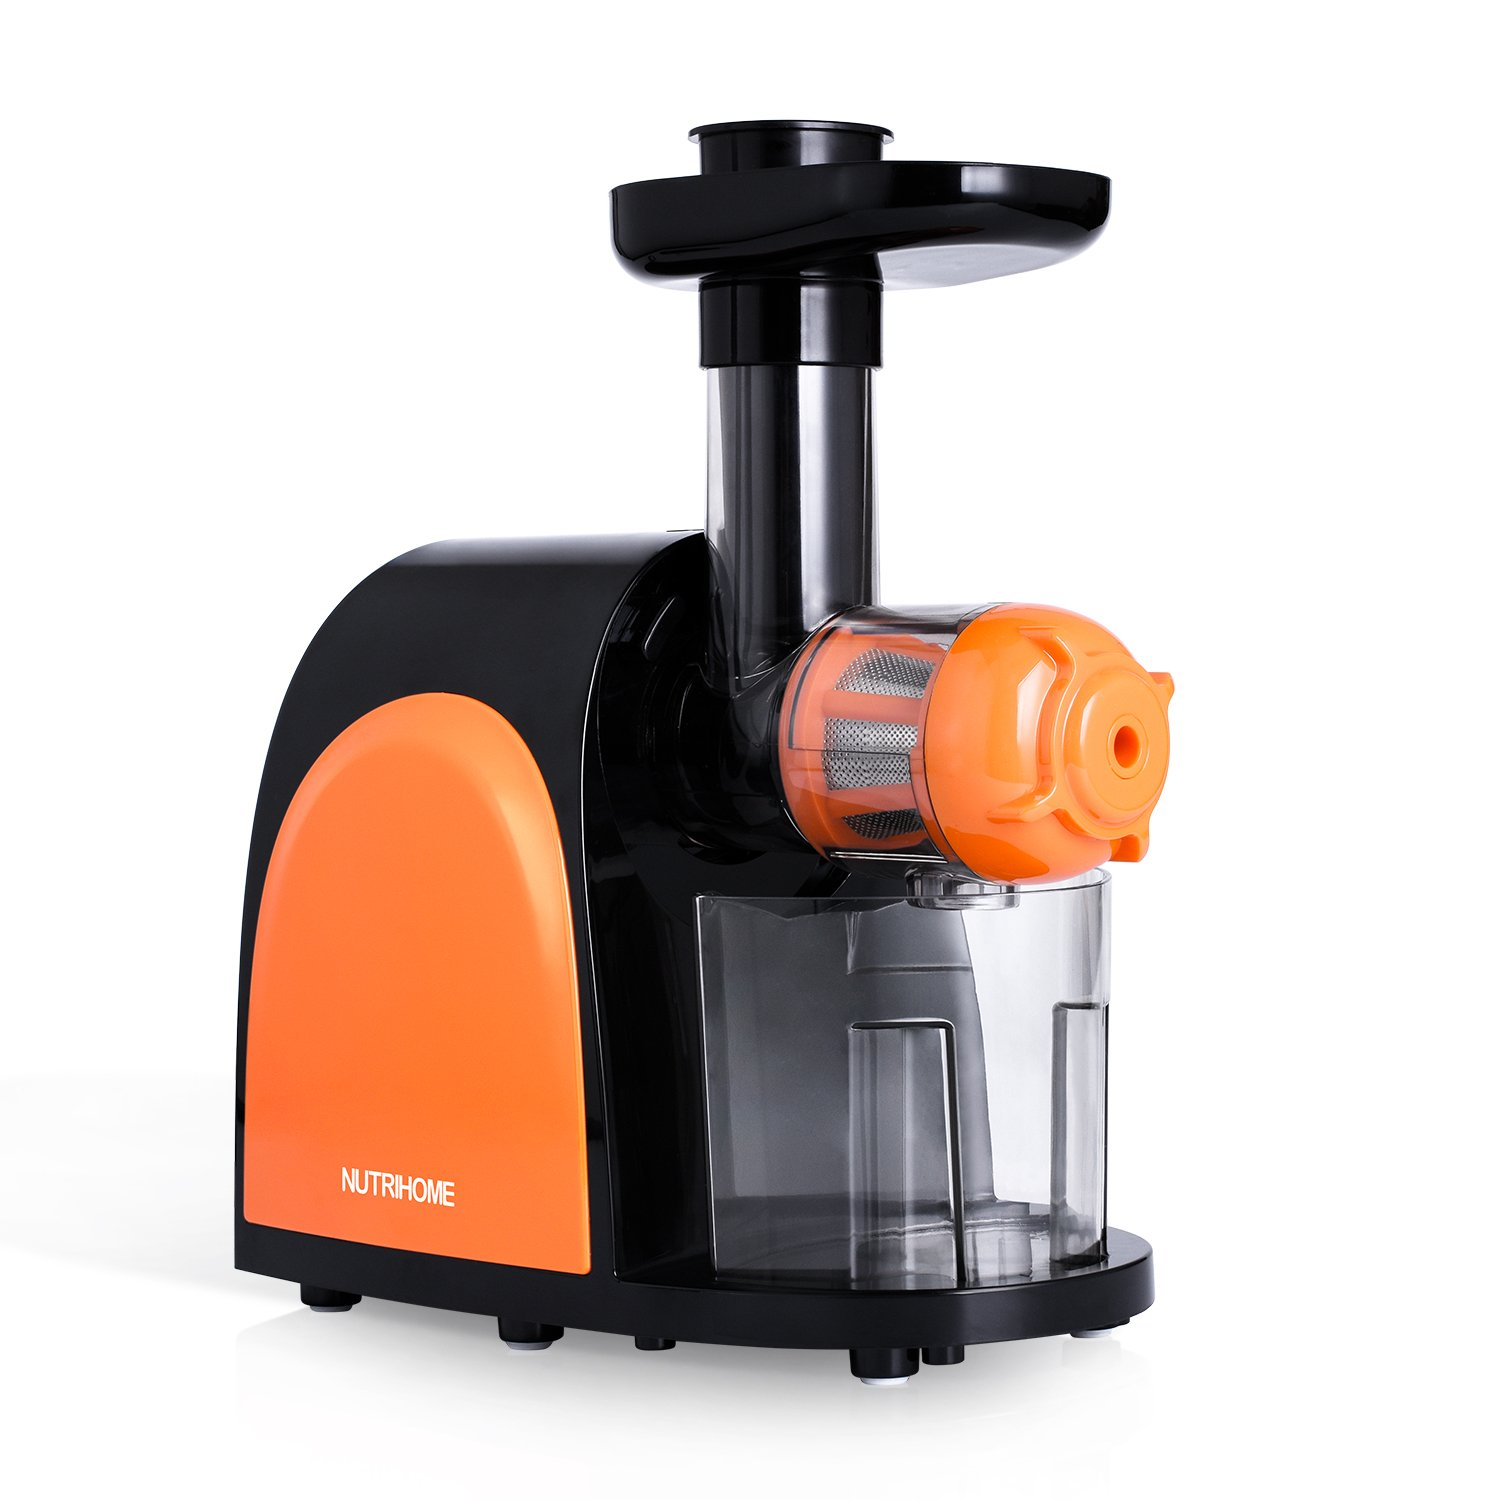 Best Slow Juicer Machine : Best Masticating Juicer 2018, Reviews and Buying Guide